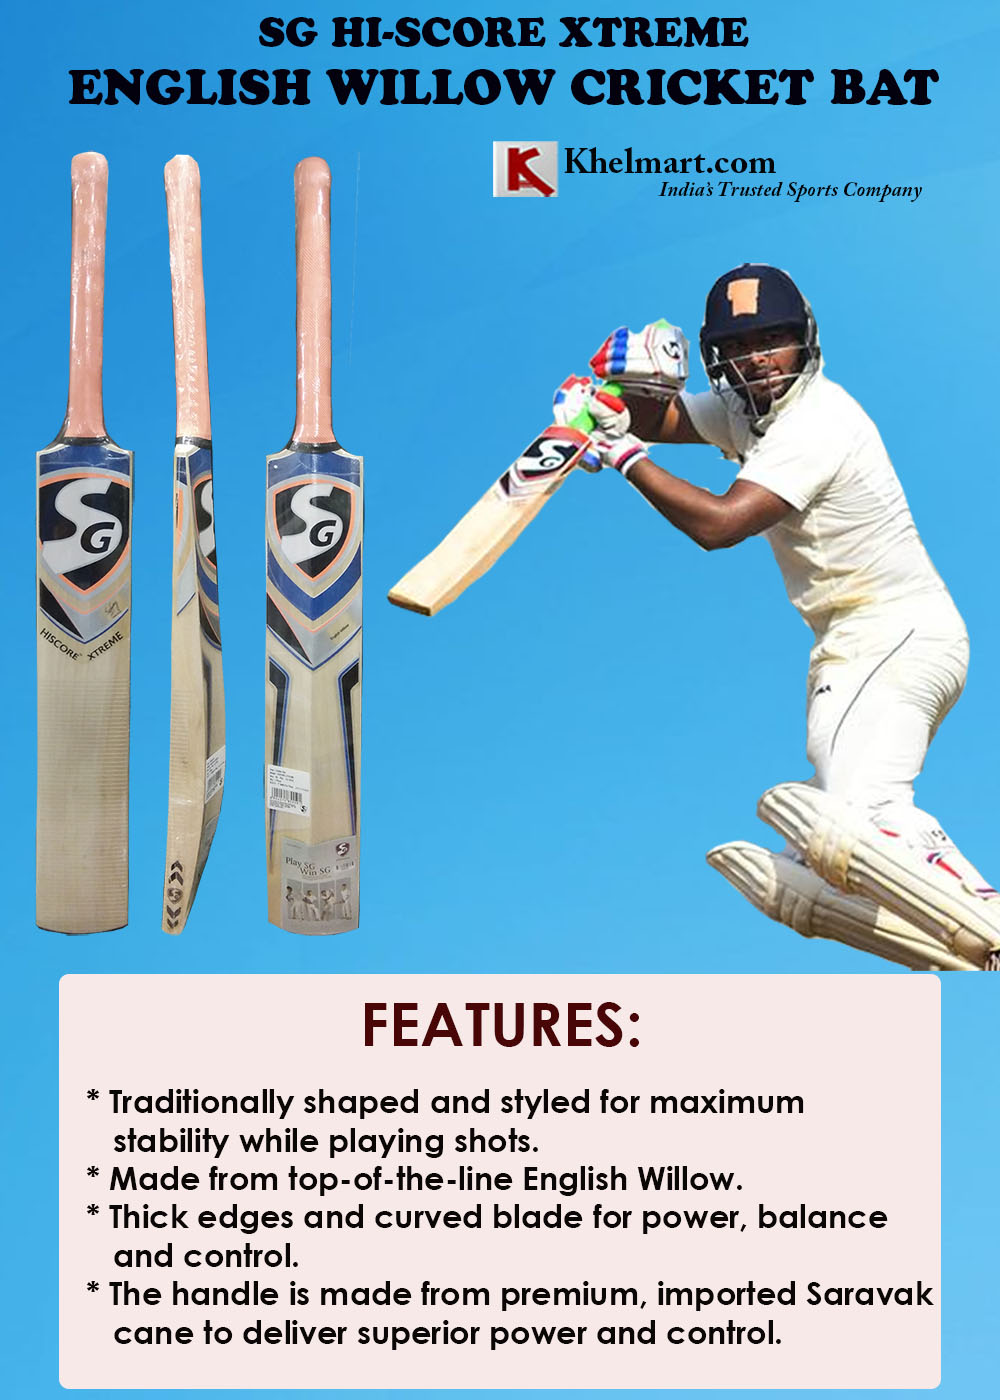 SG Hiscore Xtreme English Willow Cricket Bat